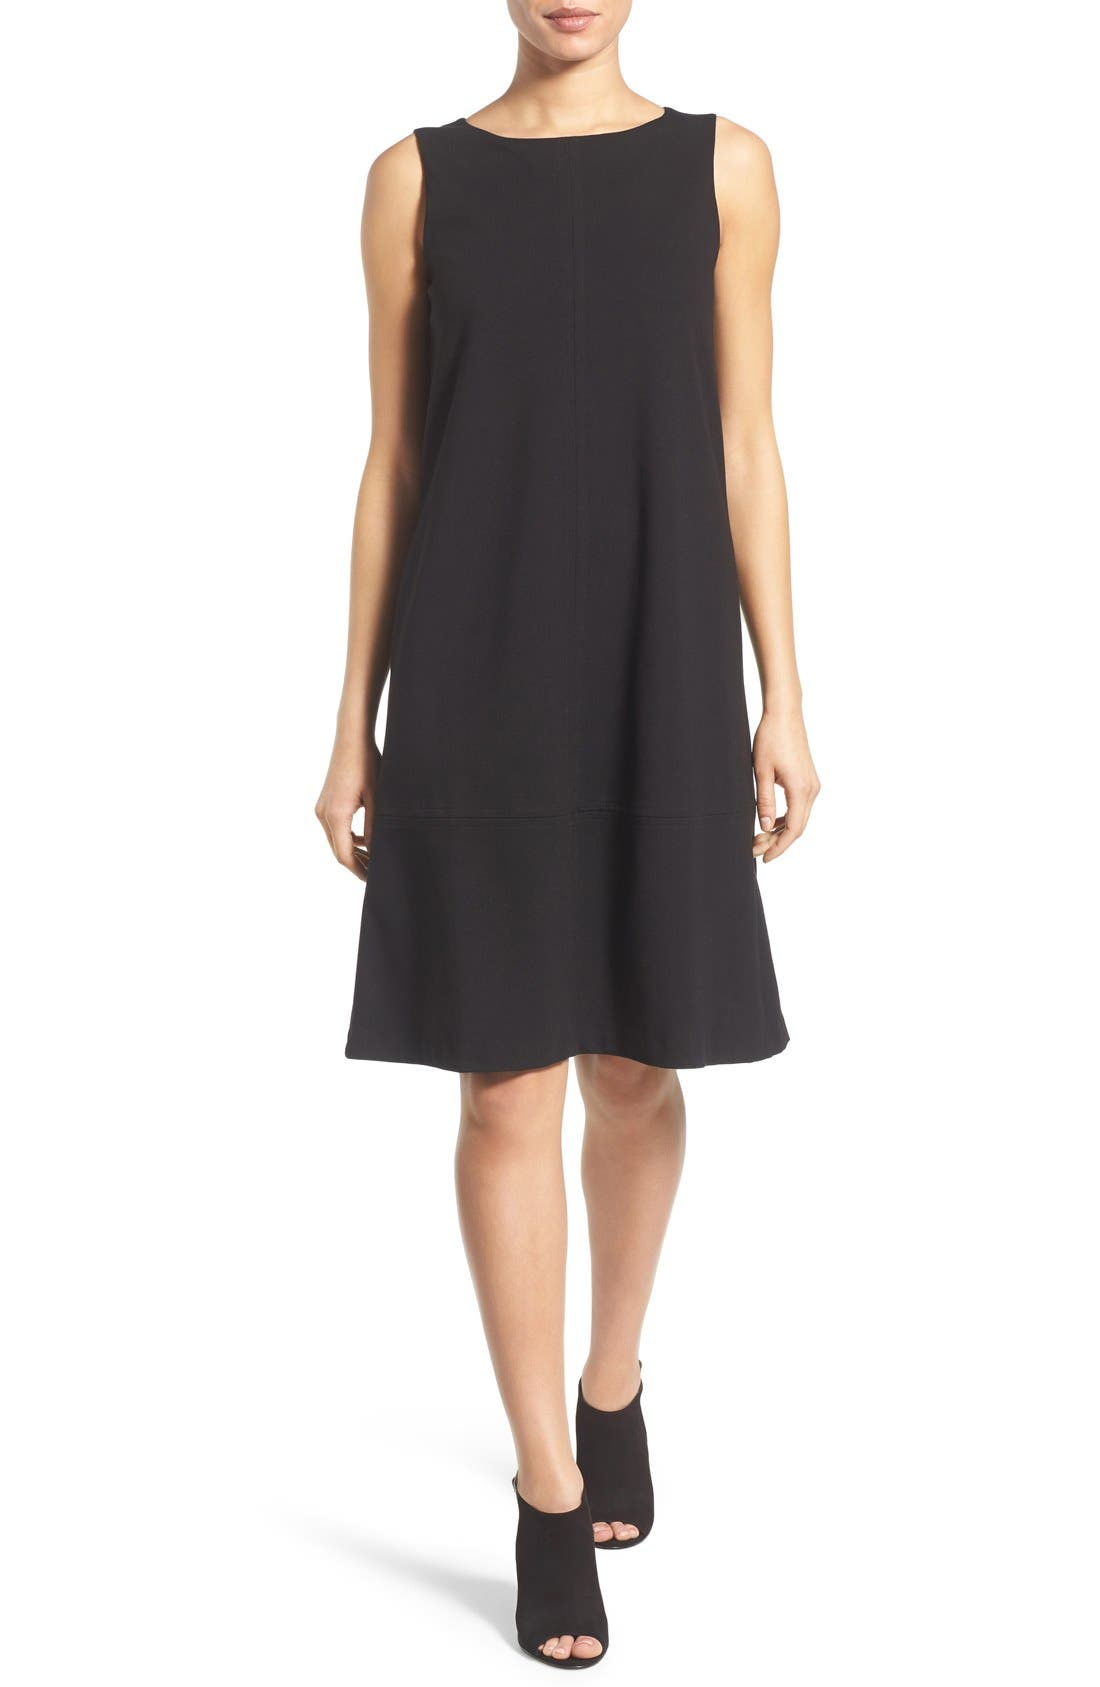 Alternate Image 1 Selected - Eileen Fisher Bateau Neck Drop Waist Shift Dress (Regular & Petite)